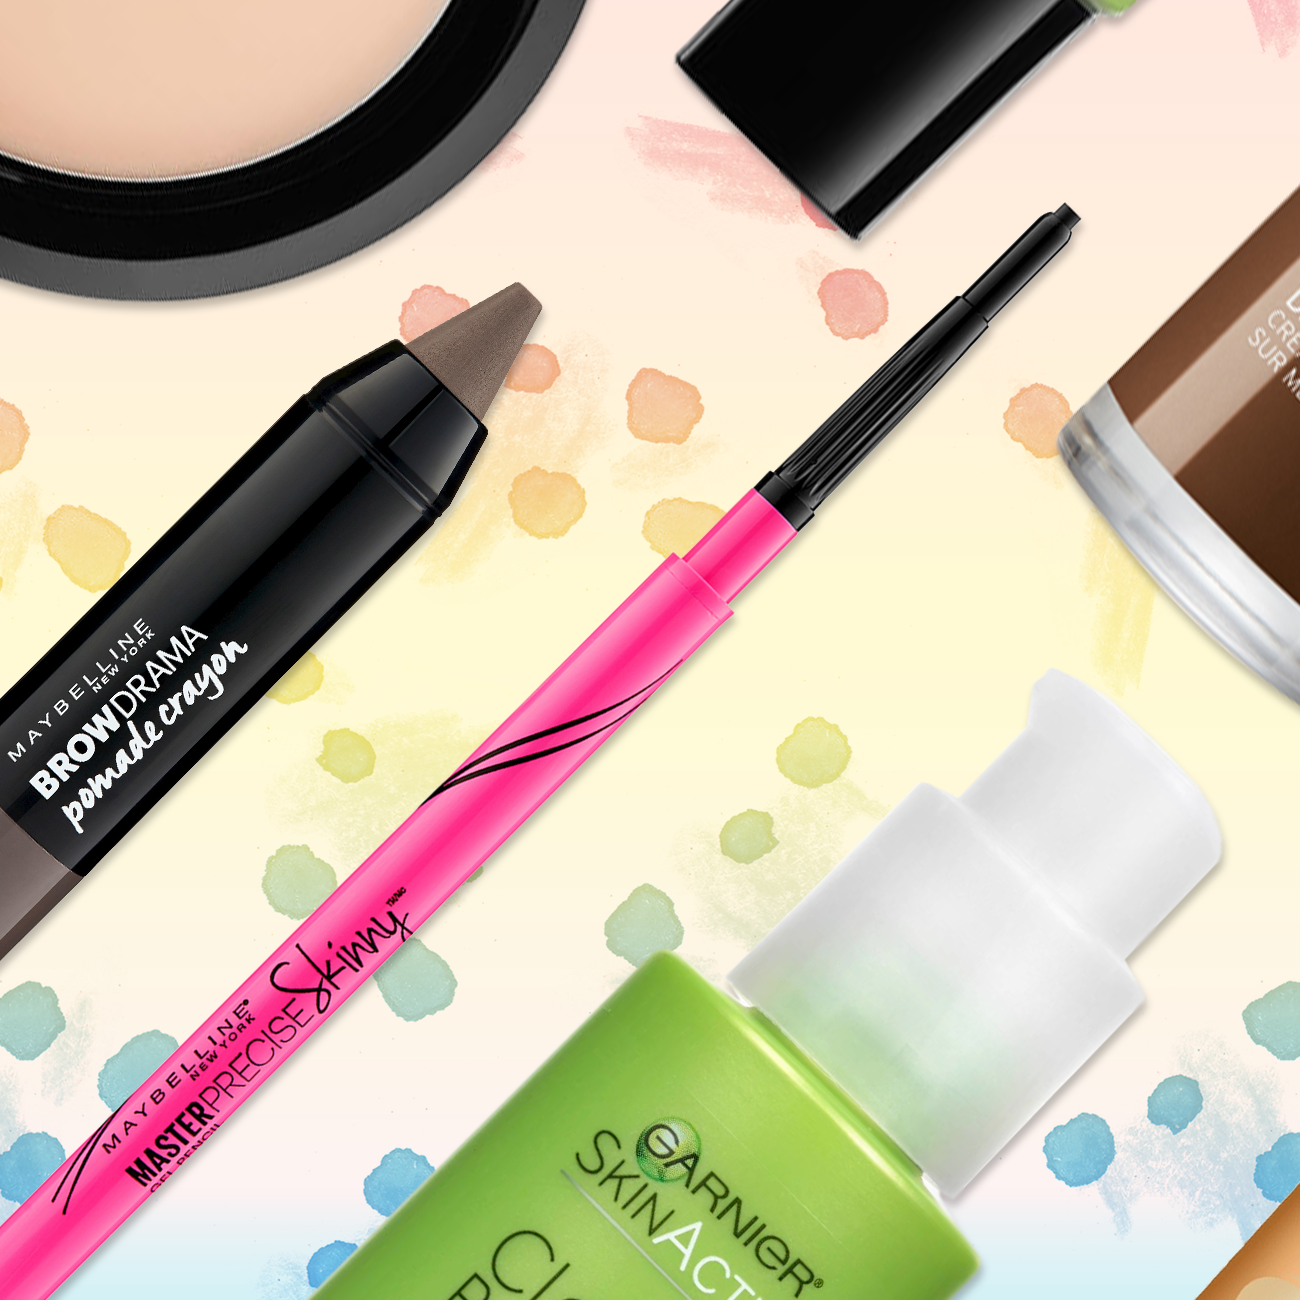 7 New Beauty Product Releases That Won't Break the Bank